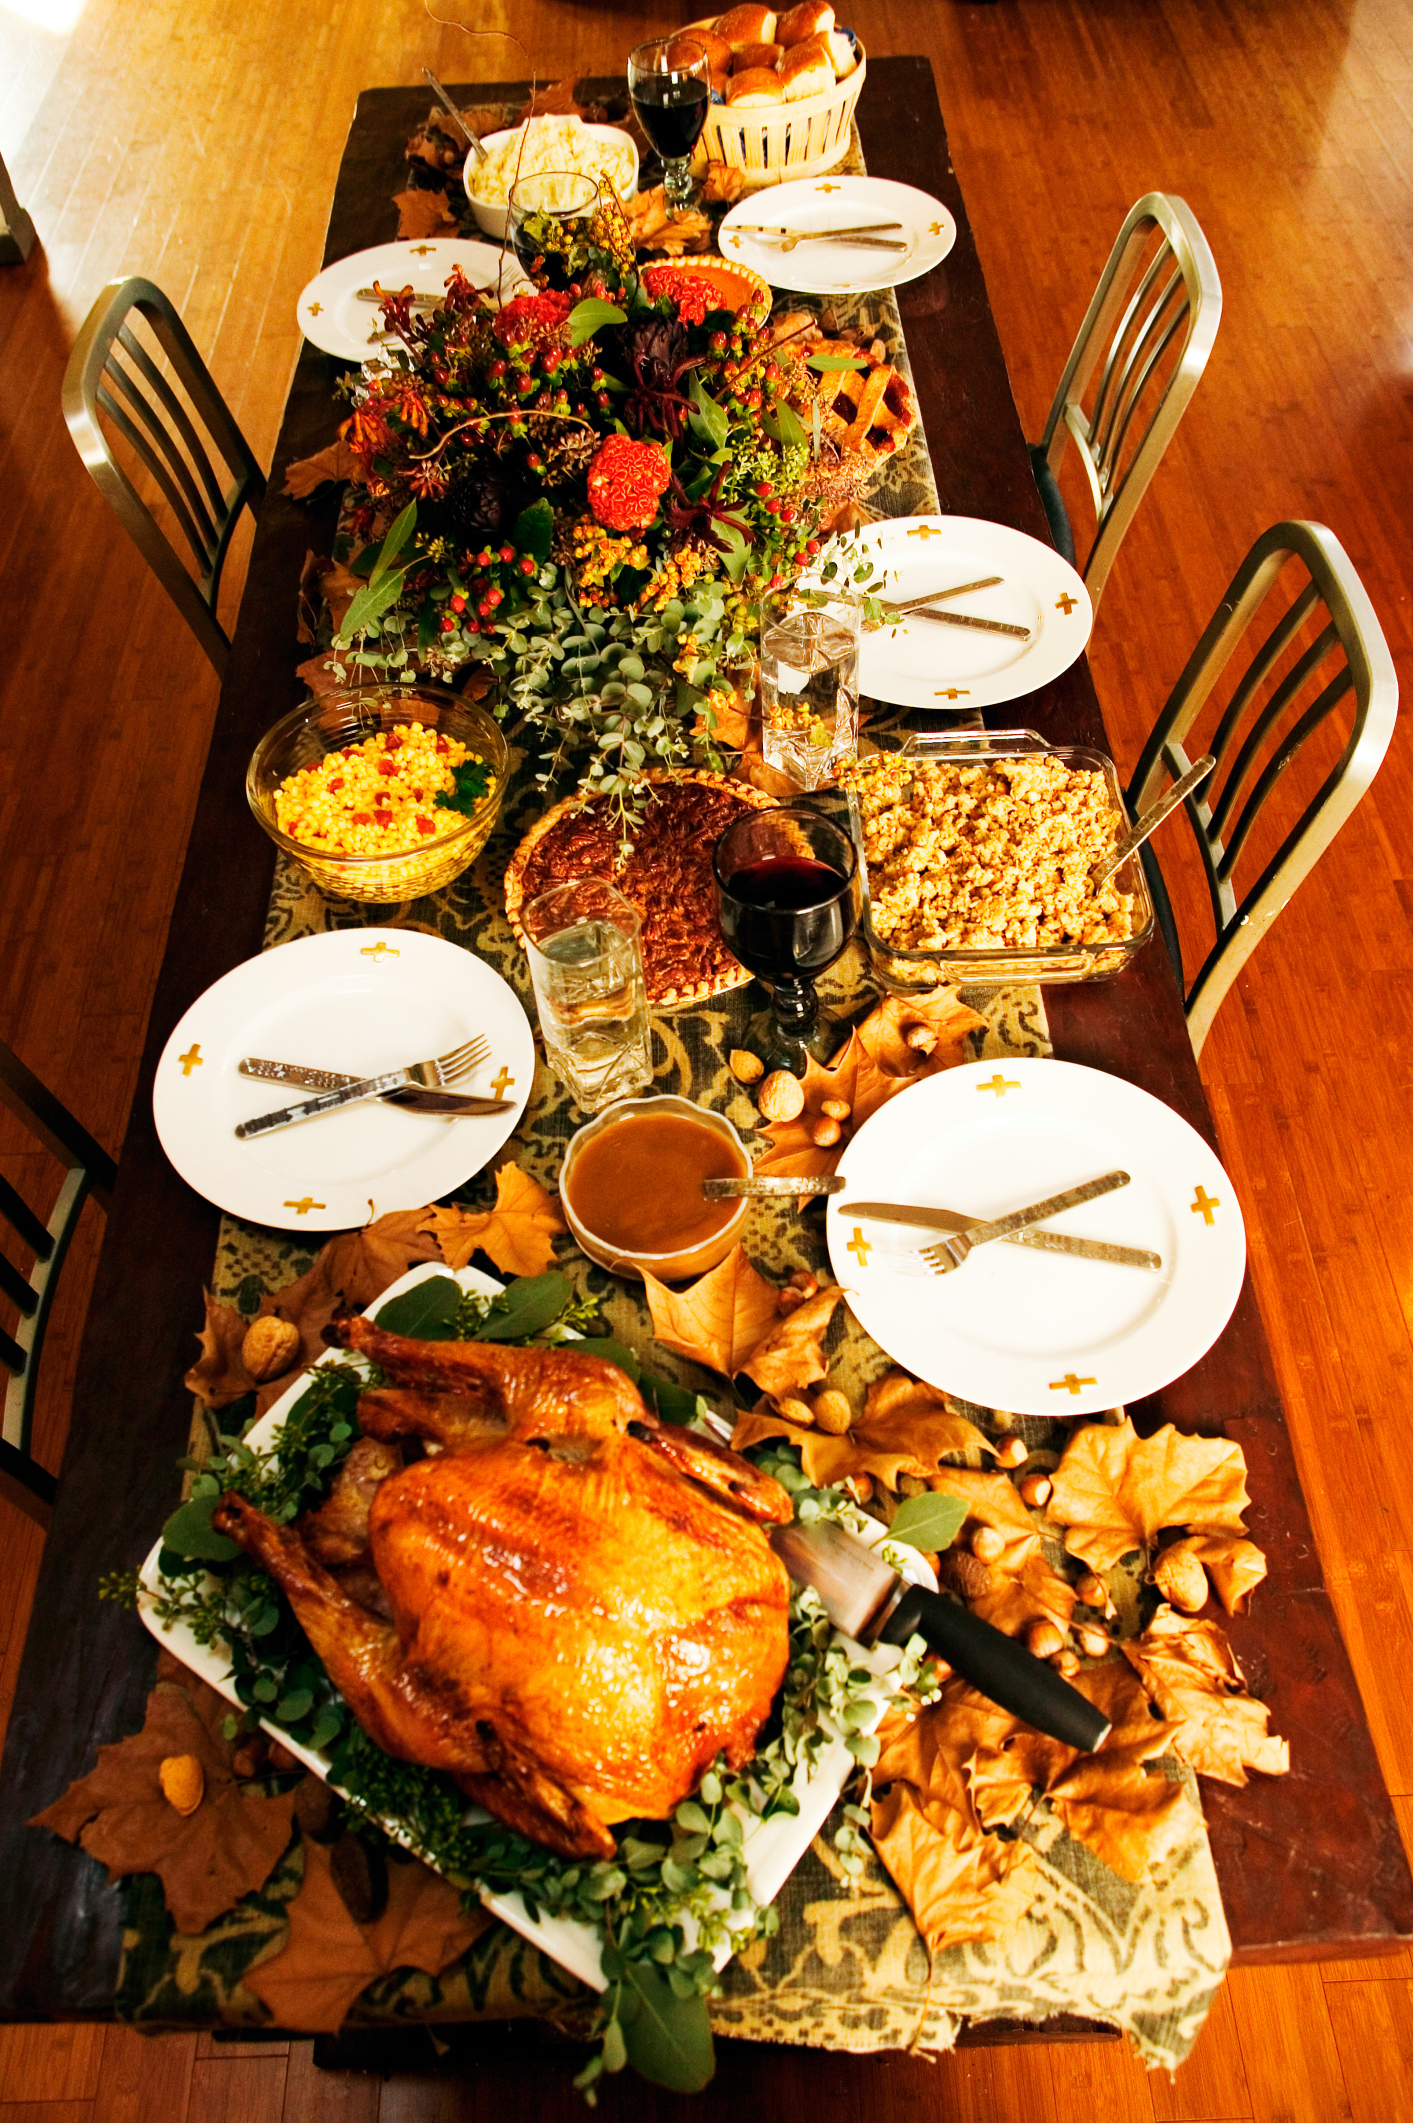 A Traditional Thanksgiving Dinner Includes A Roasted Turkey Bread Stuffing A Myriad Of Potato Dishes And Side Dishes Ranging From Bean Casserole To